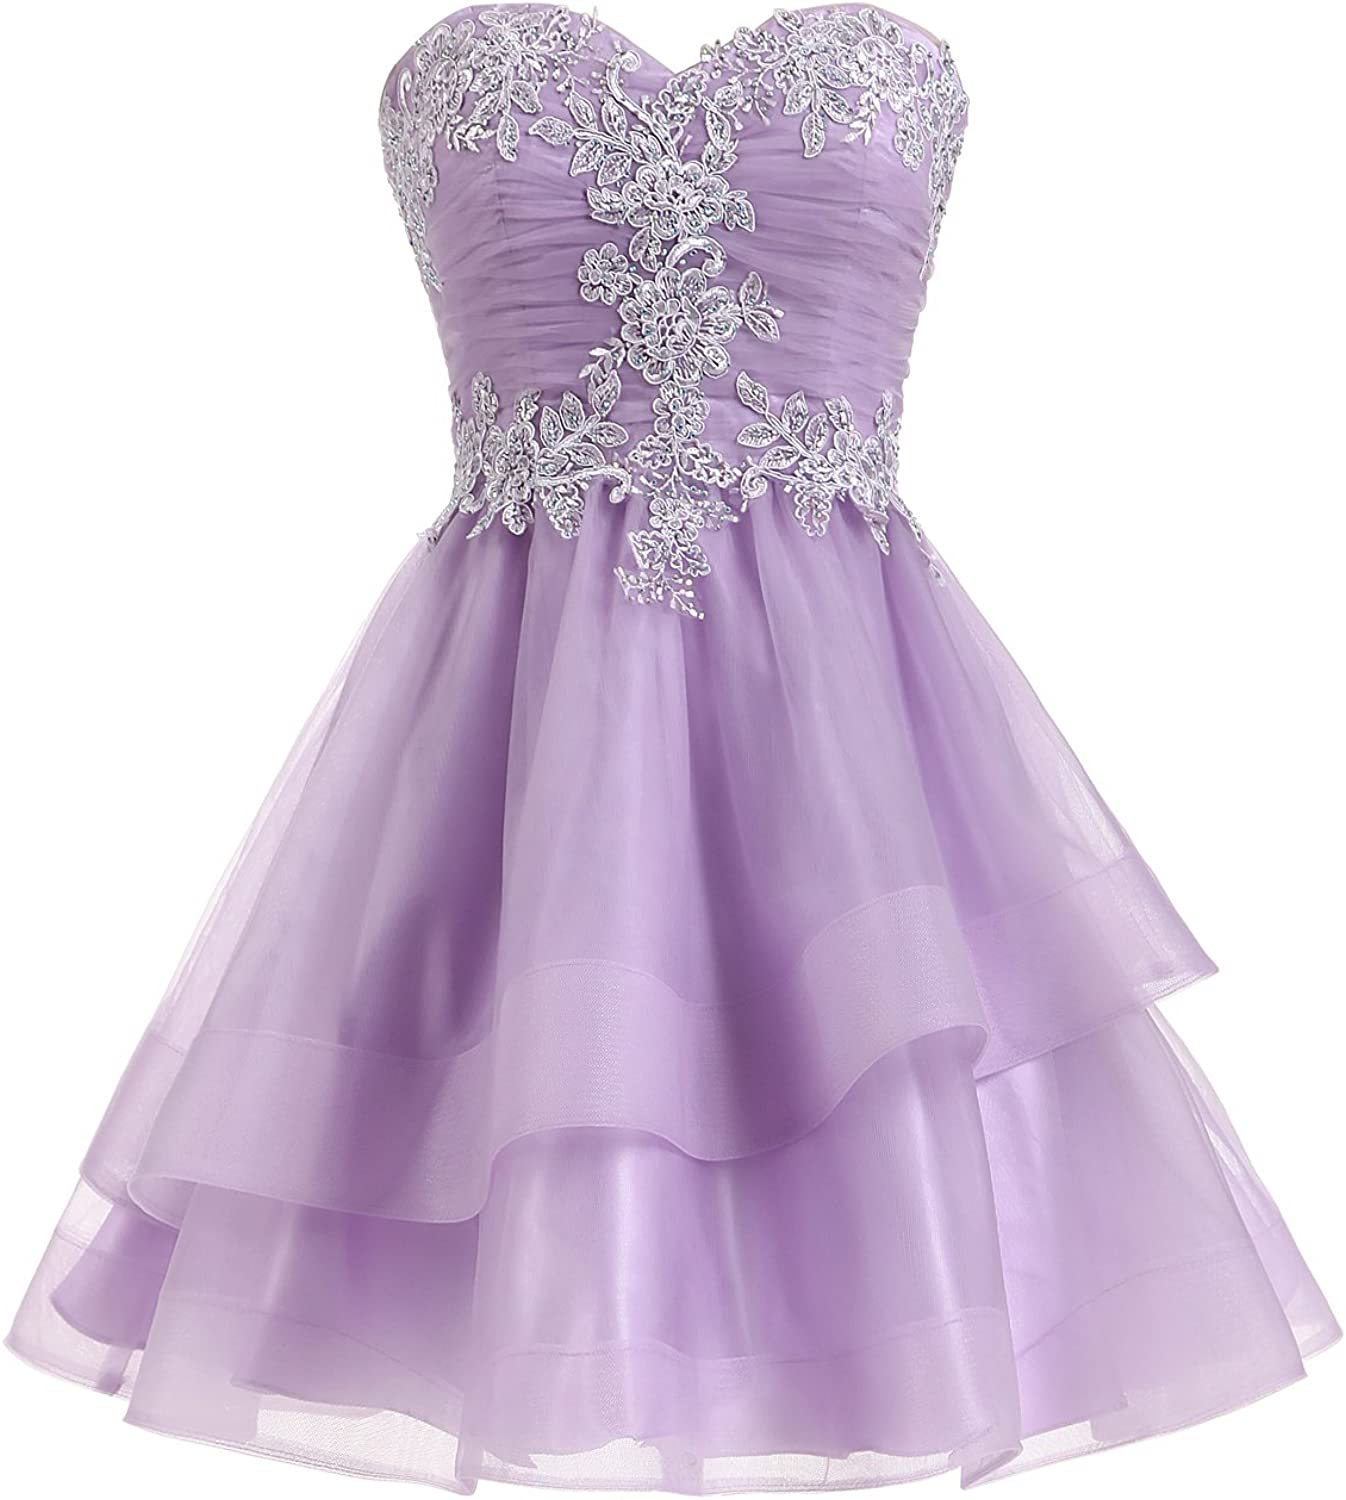 Epinkbridal Lace Applique Short Prom Gowns for Women Quinceanera Homecoming Dresses